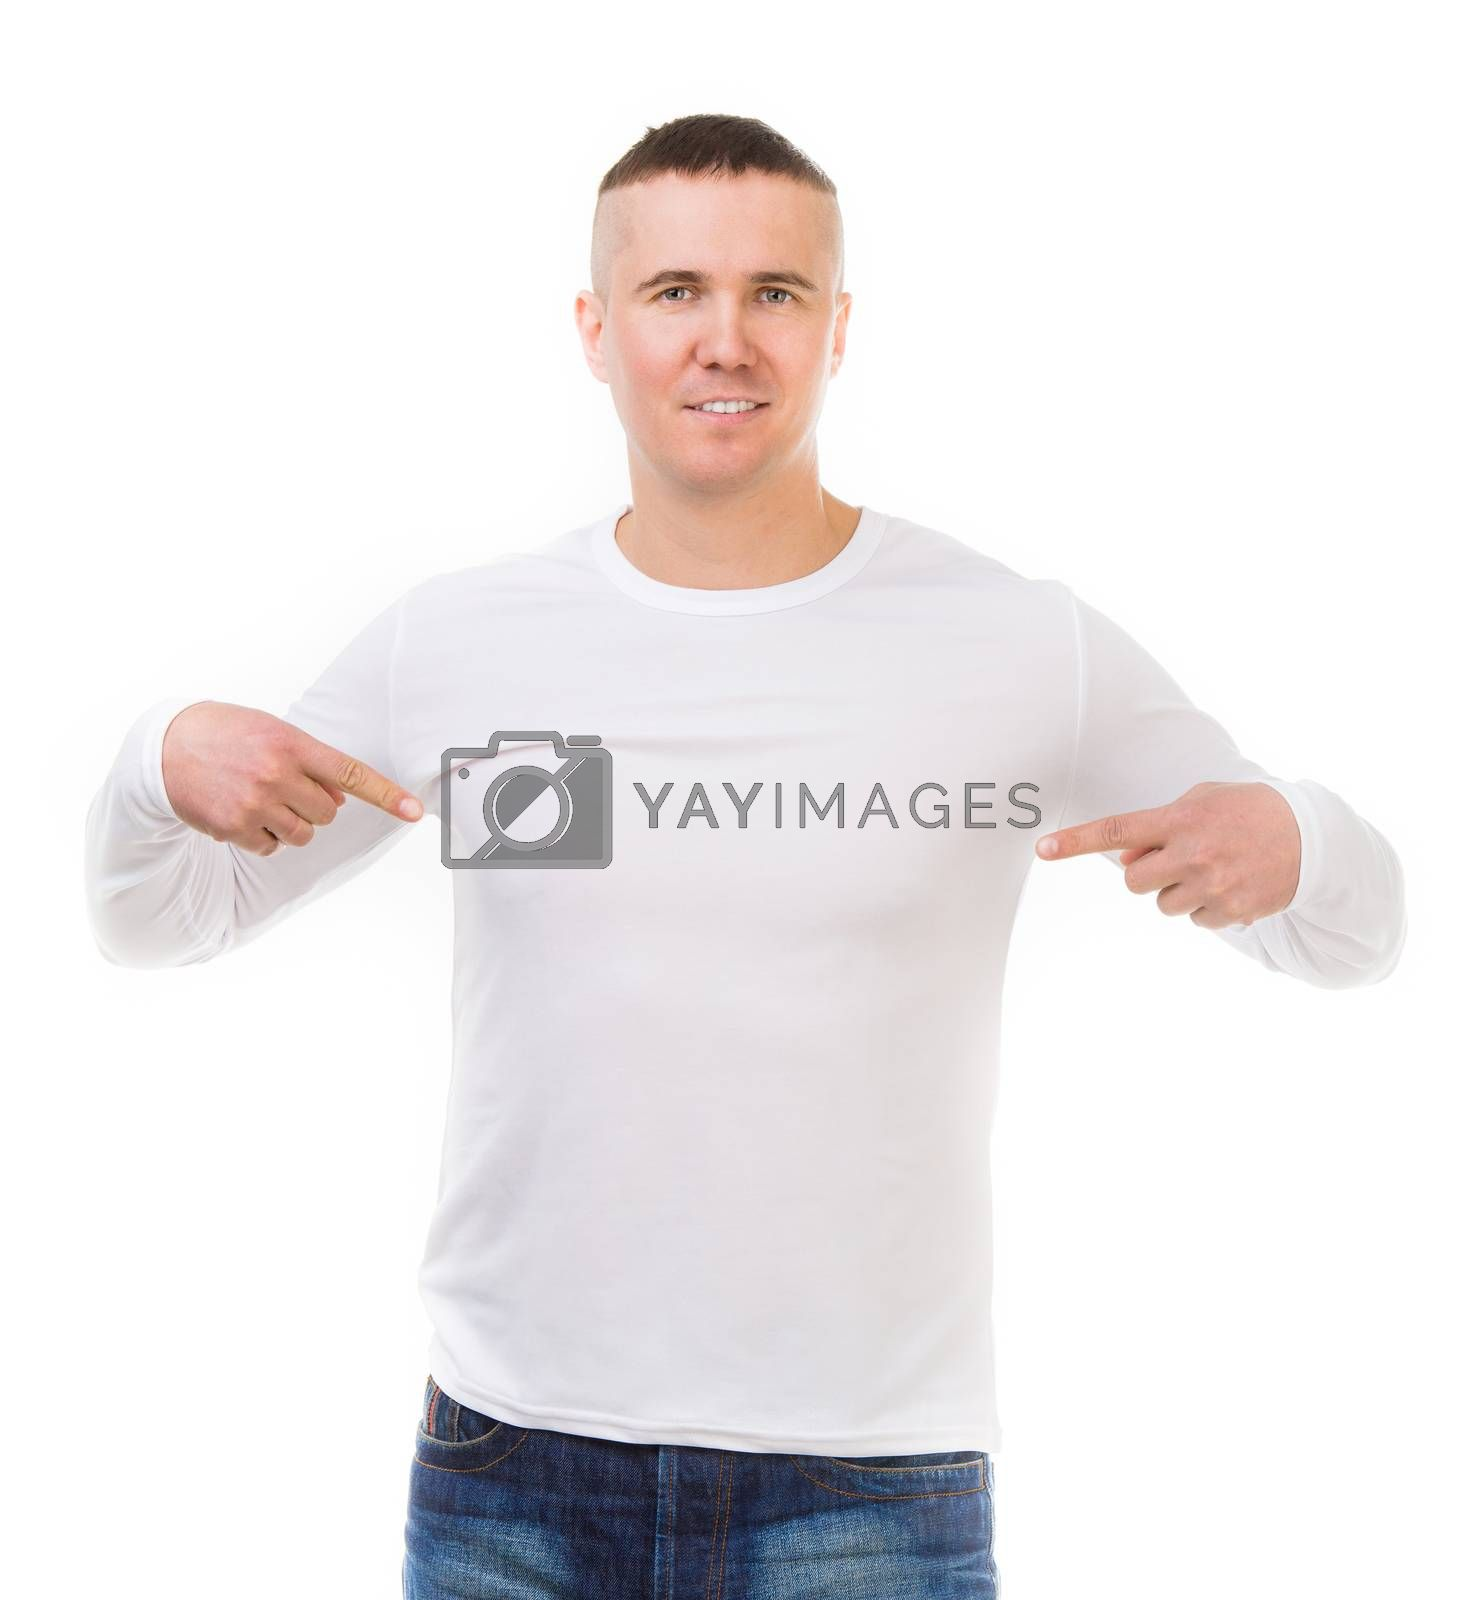 Royalty free image of man in a white shirt with long sleeves by GekaSkr